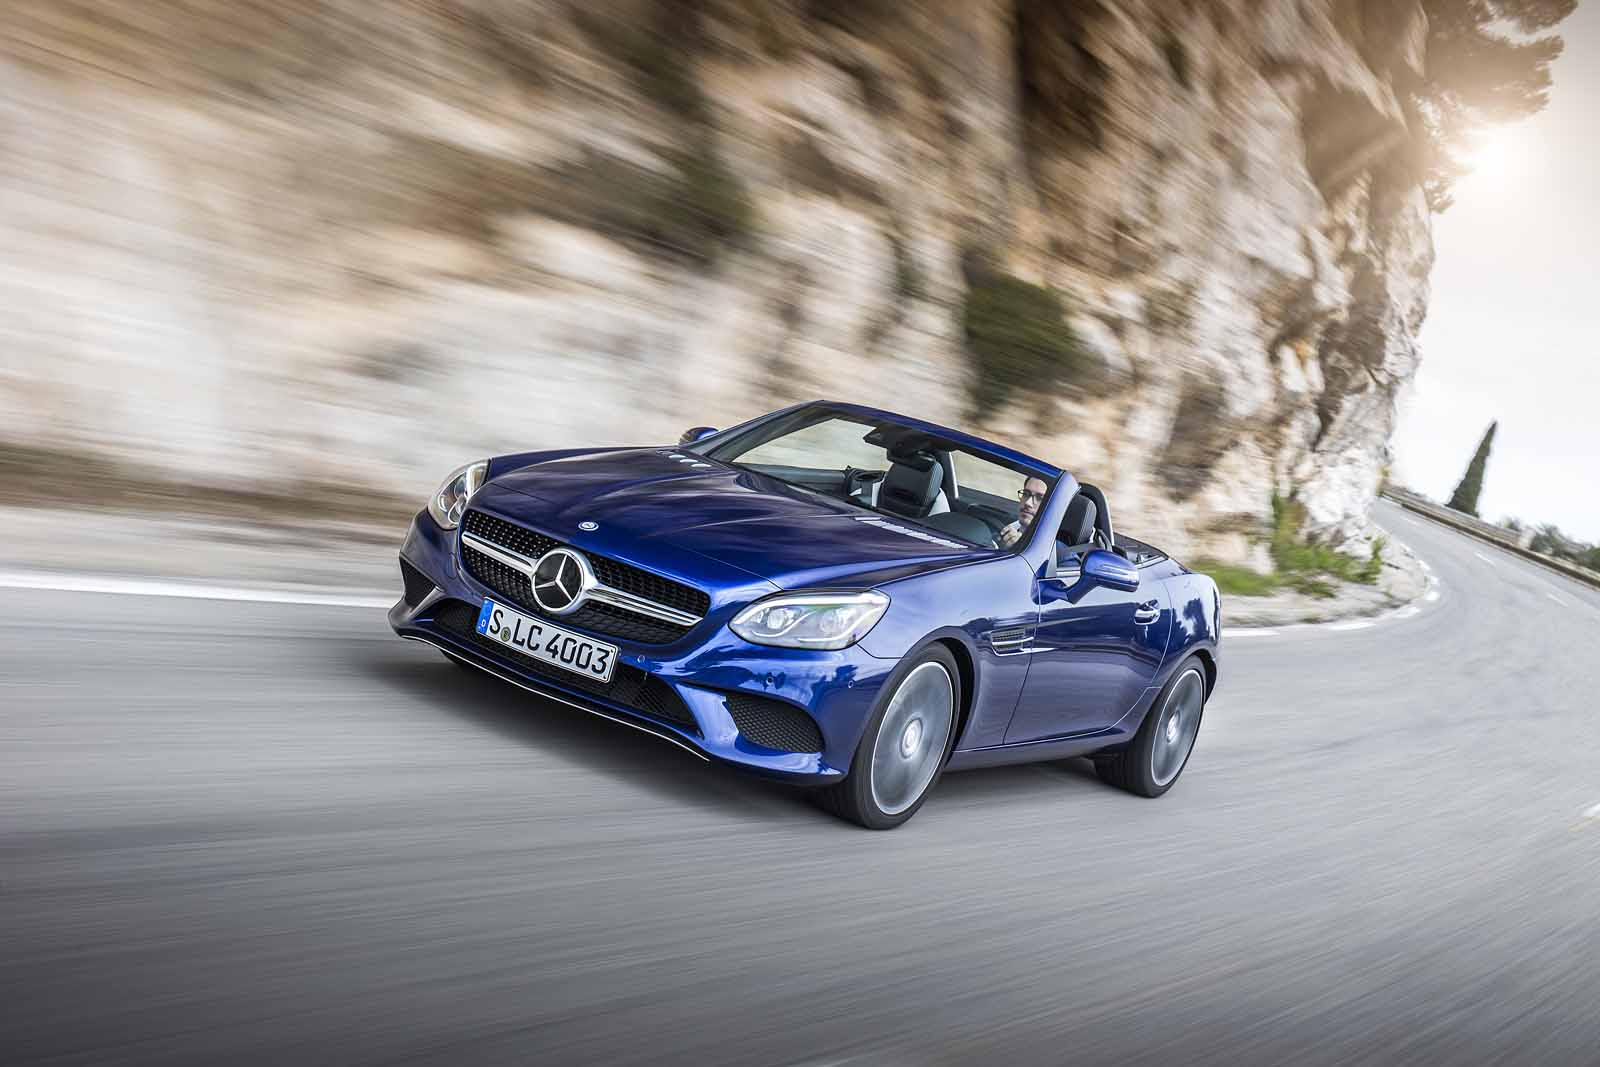 Volvo Slc >> 2017 Mercedes-Benz SLC 300 Roadster Review - AutoGuide.com